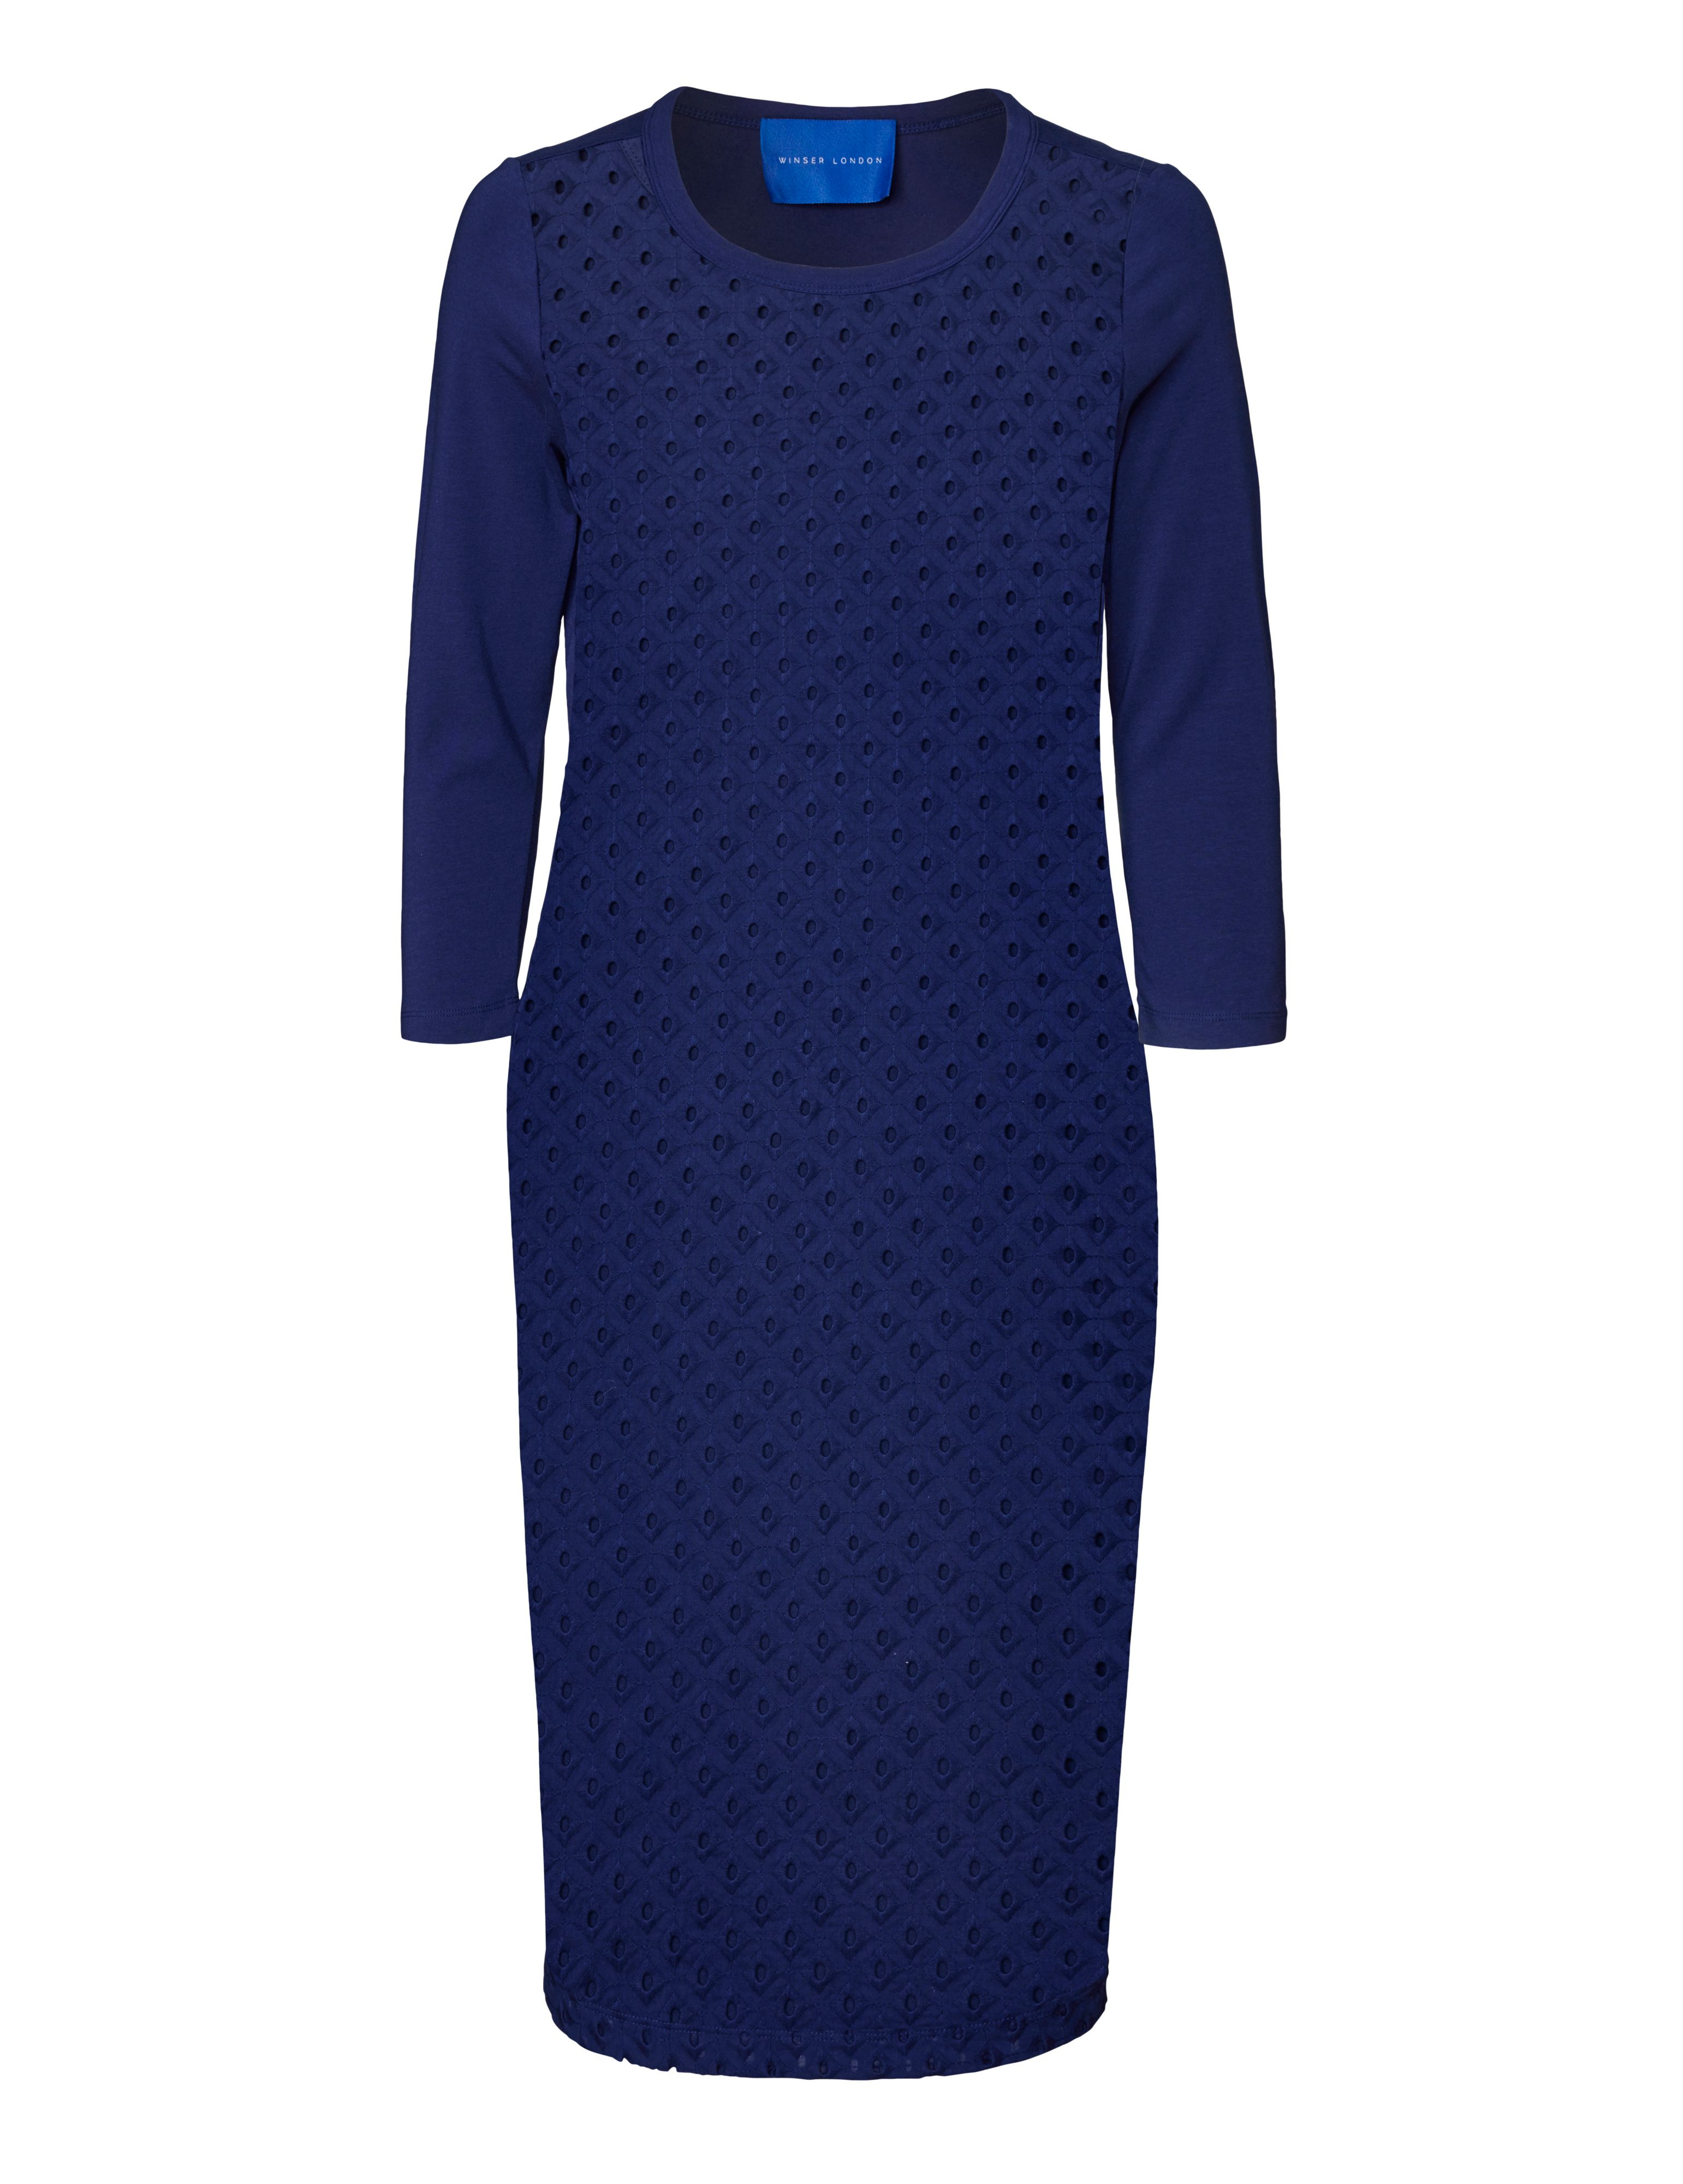 Winser London Broderie Anglaise Dress With Jersey Back, Blue